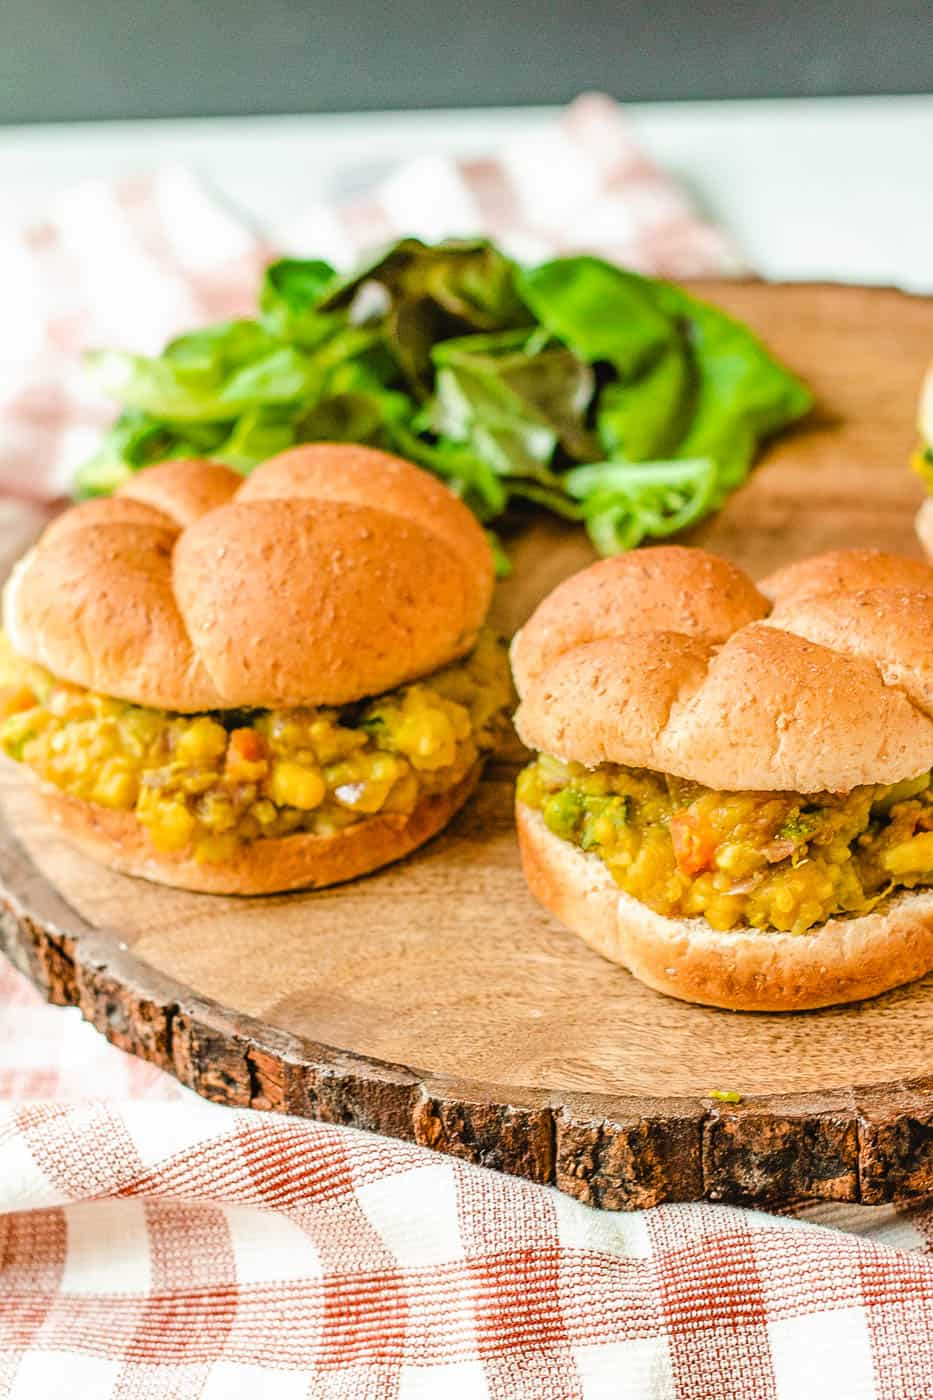 Pav Bhaji (or Indian Spiced Vegetarian Sloppy Joes) served on a wooden cutting board with a wheat bun